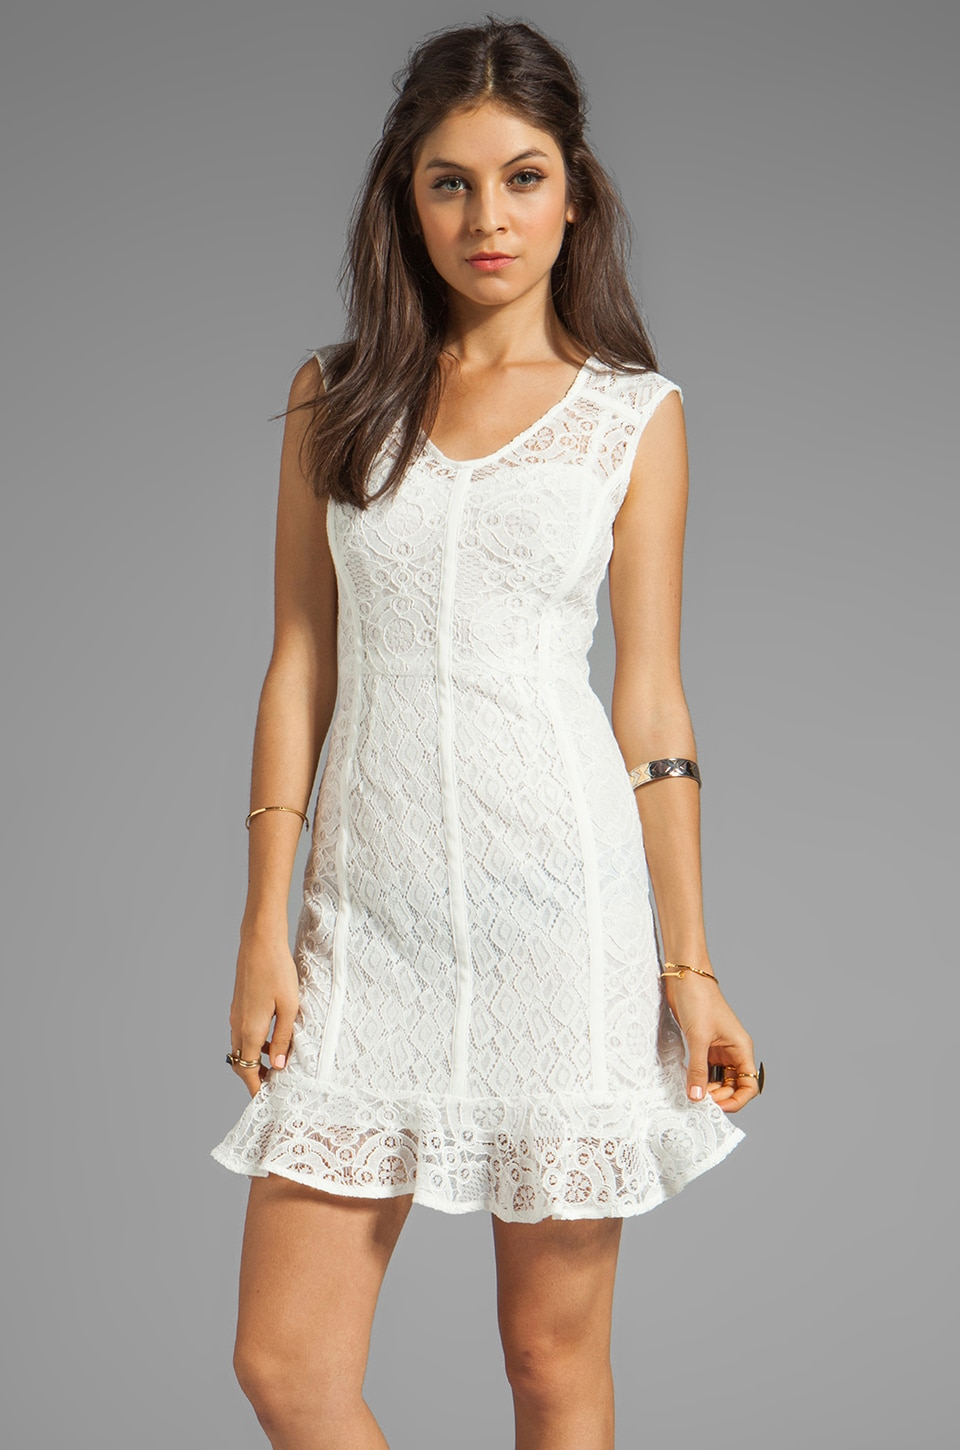 Nanette Lepore La Roca Dress in White